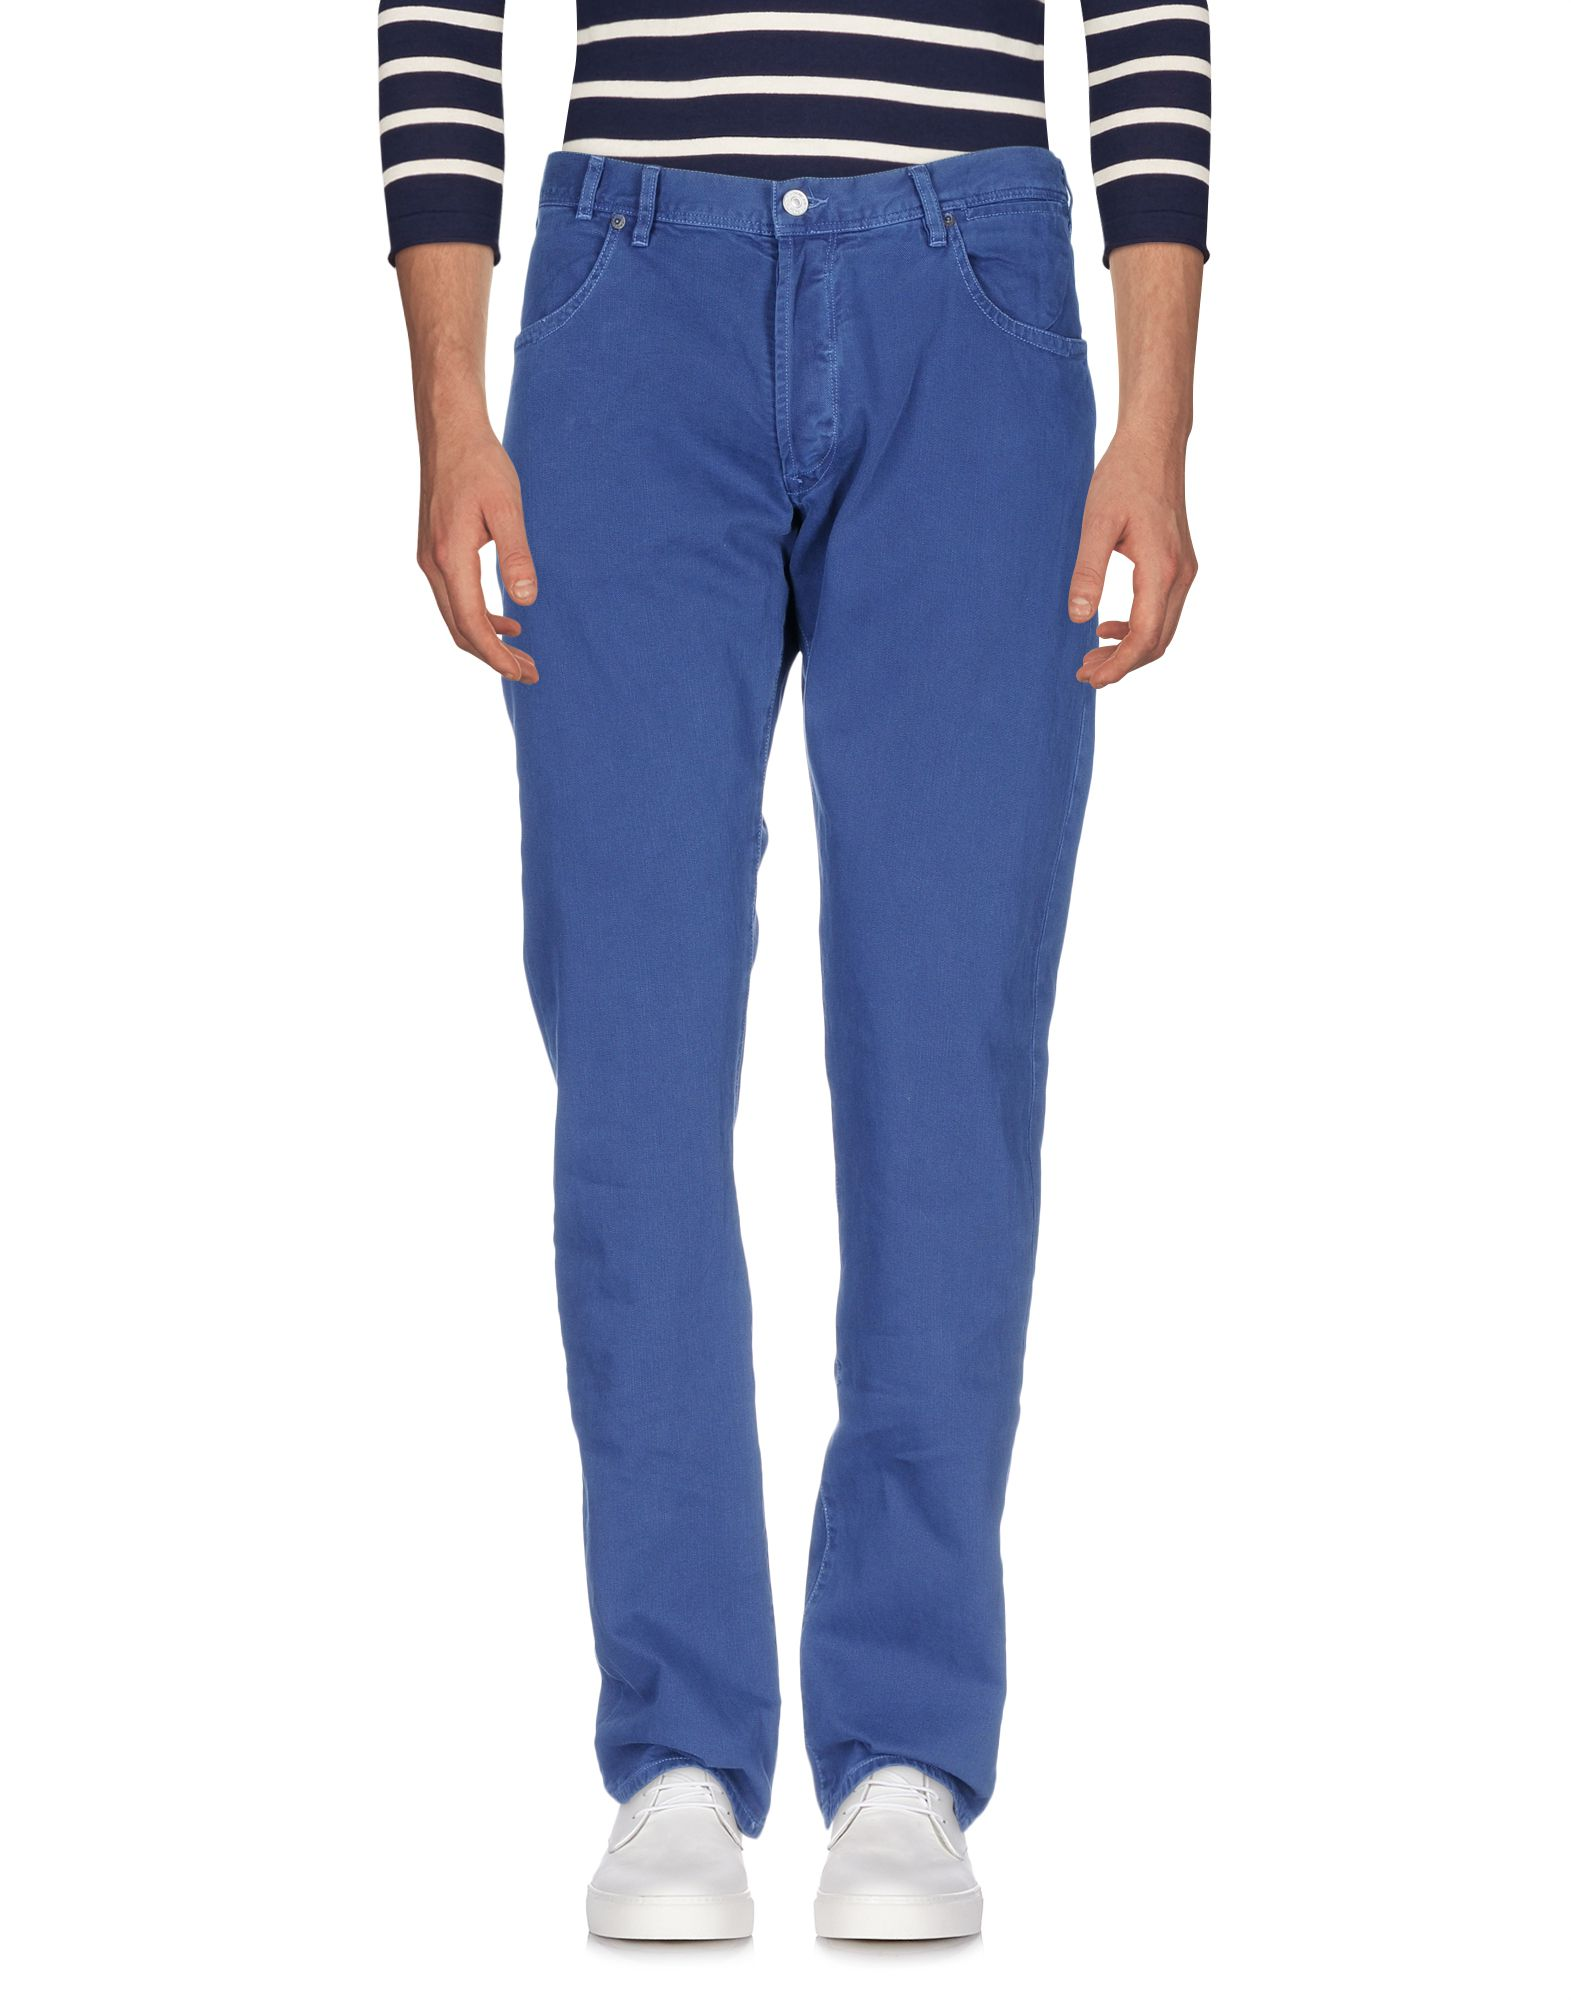 Pantaloni Jeans Paul Smith Uomo - Acquista online su